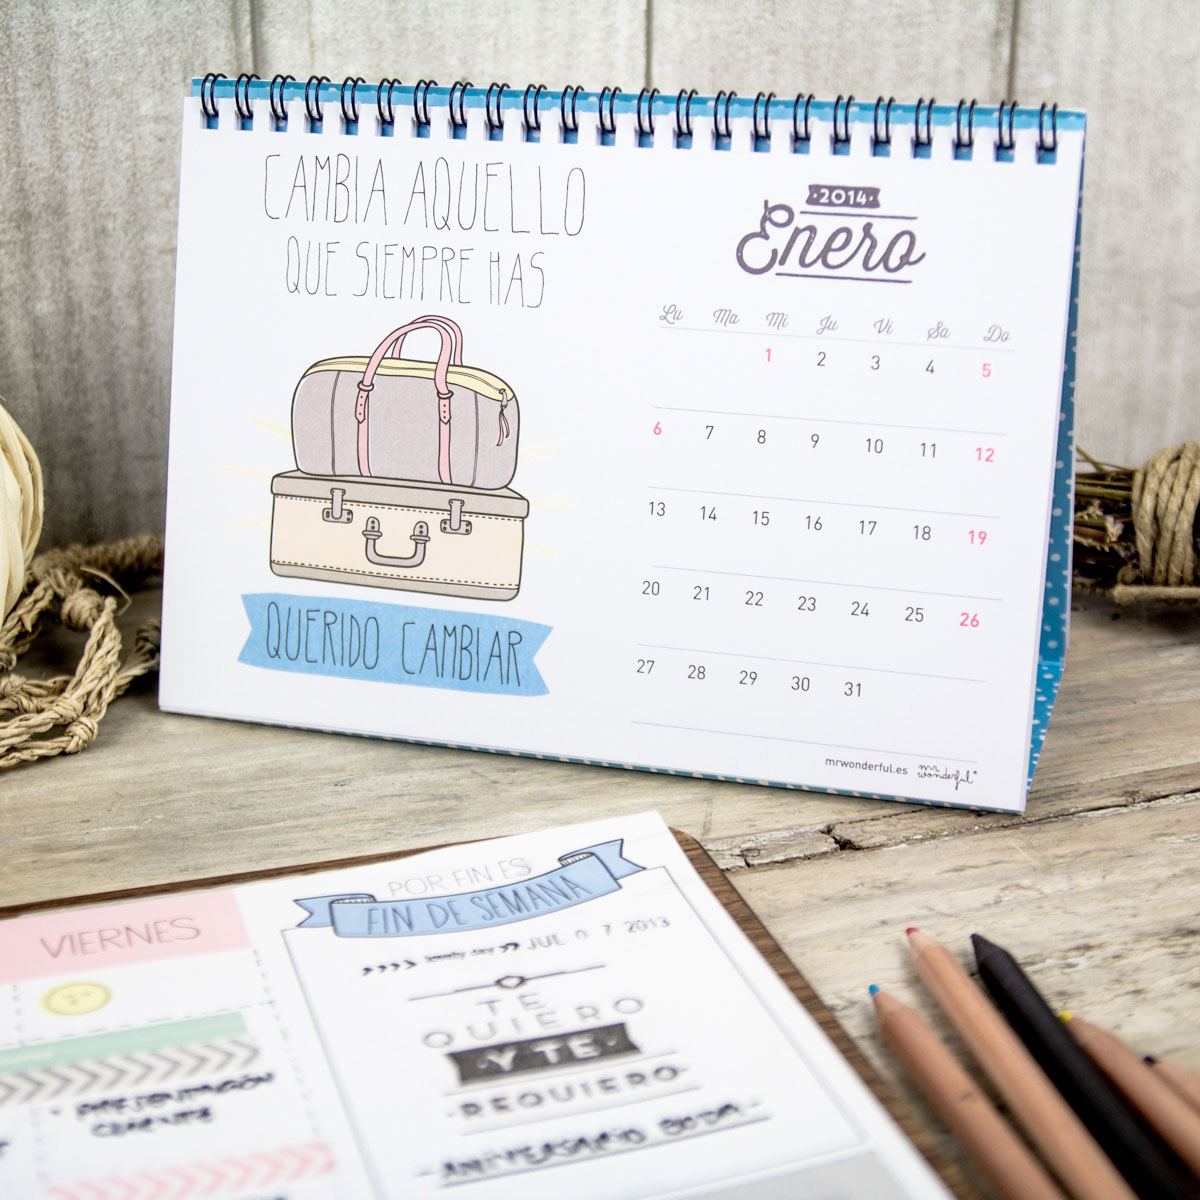 mrwonderful_calendarios_2014_147_1